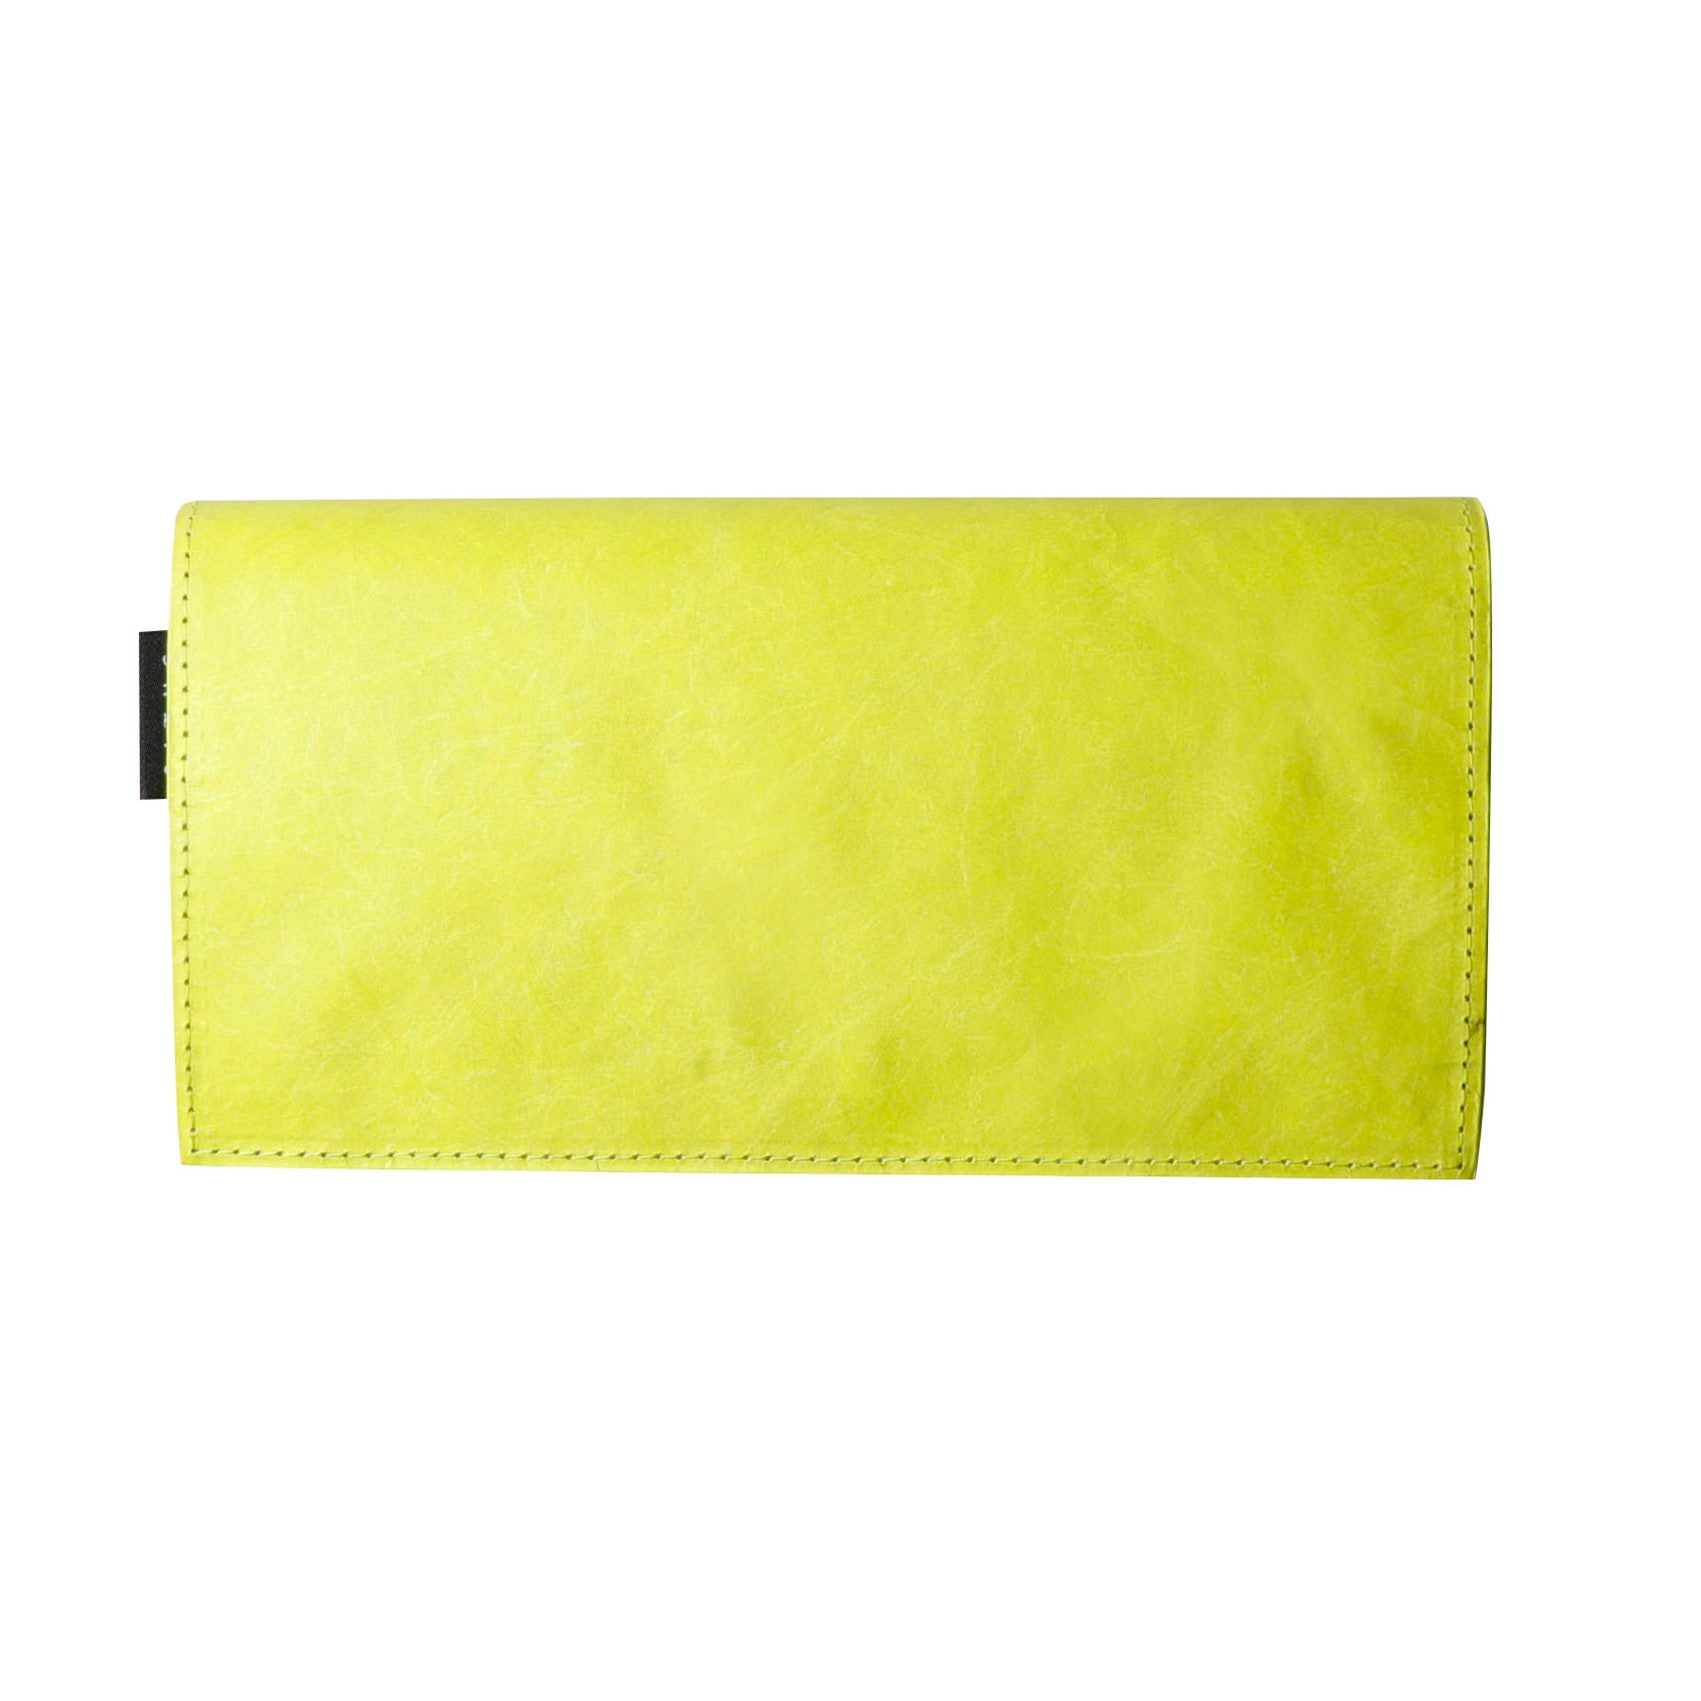 SITUS Long Wallet | Fluorescent Yellow【※数量限定カラー2021年2月10日入荷予定】